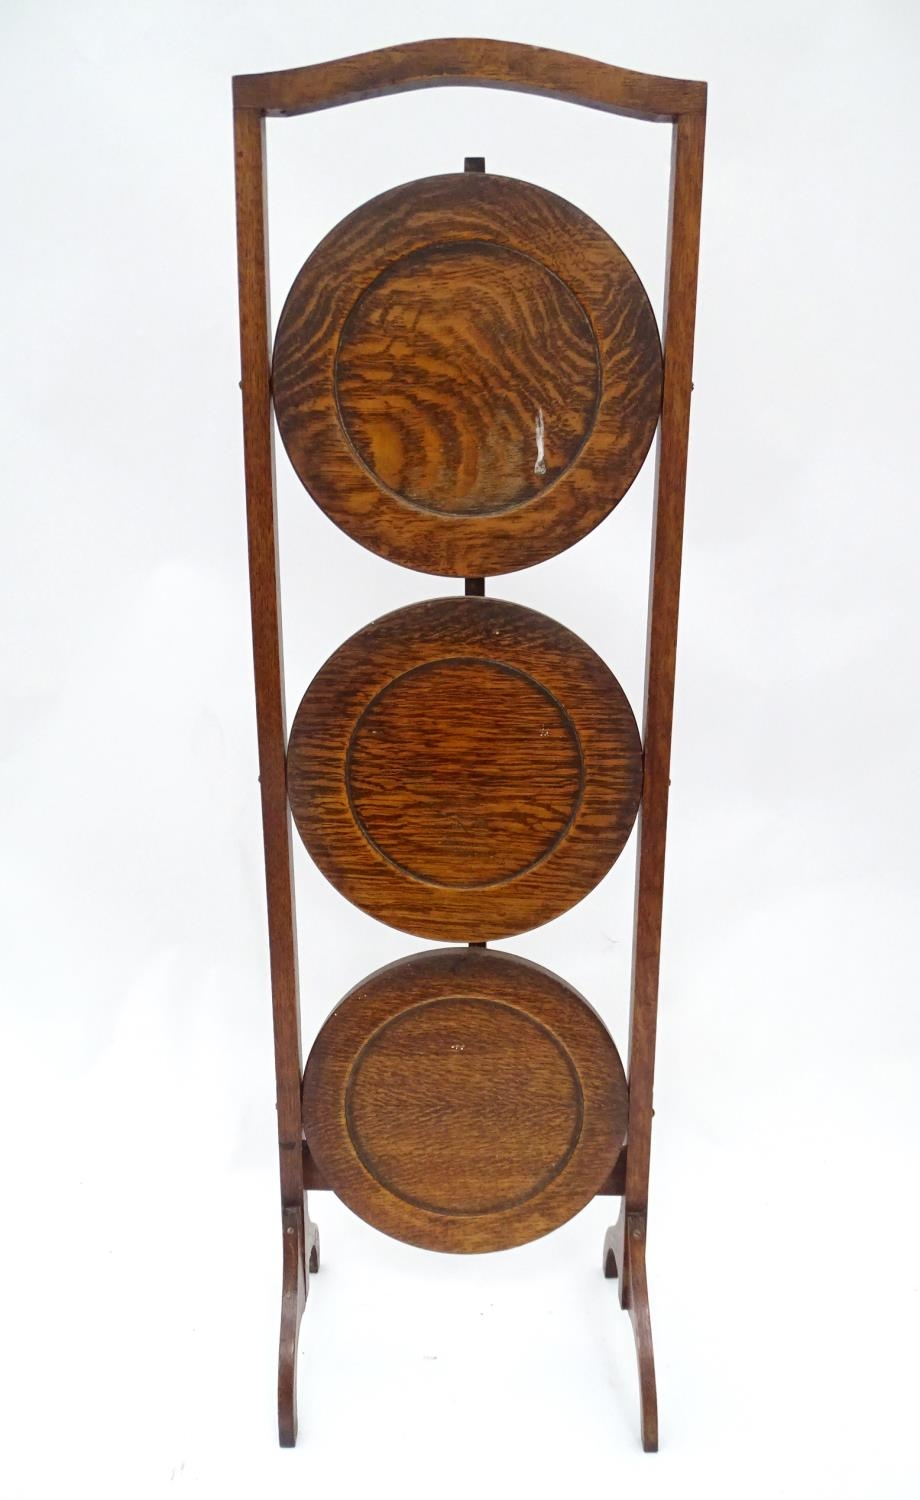 A 20thC three tier folding cake stand Please Note - we do not make reference to the condition of